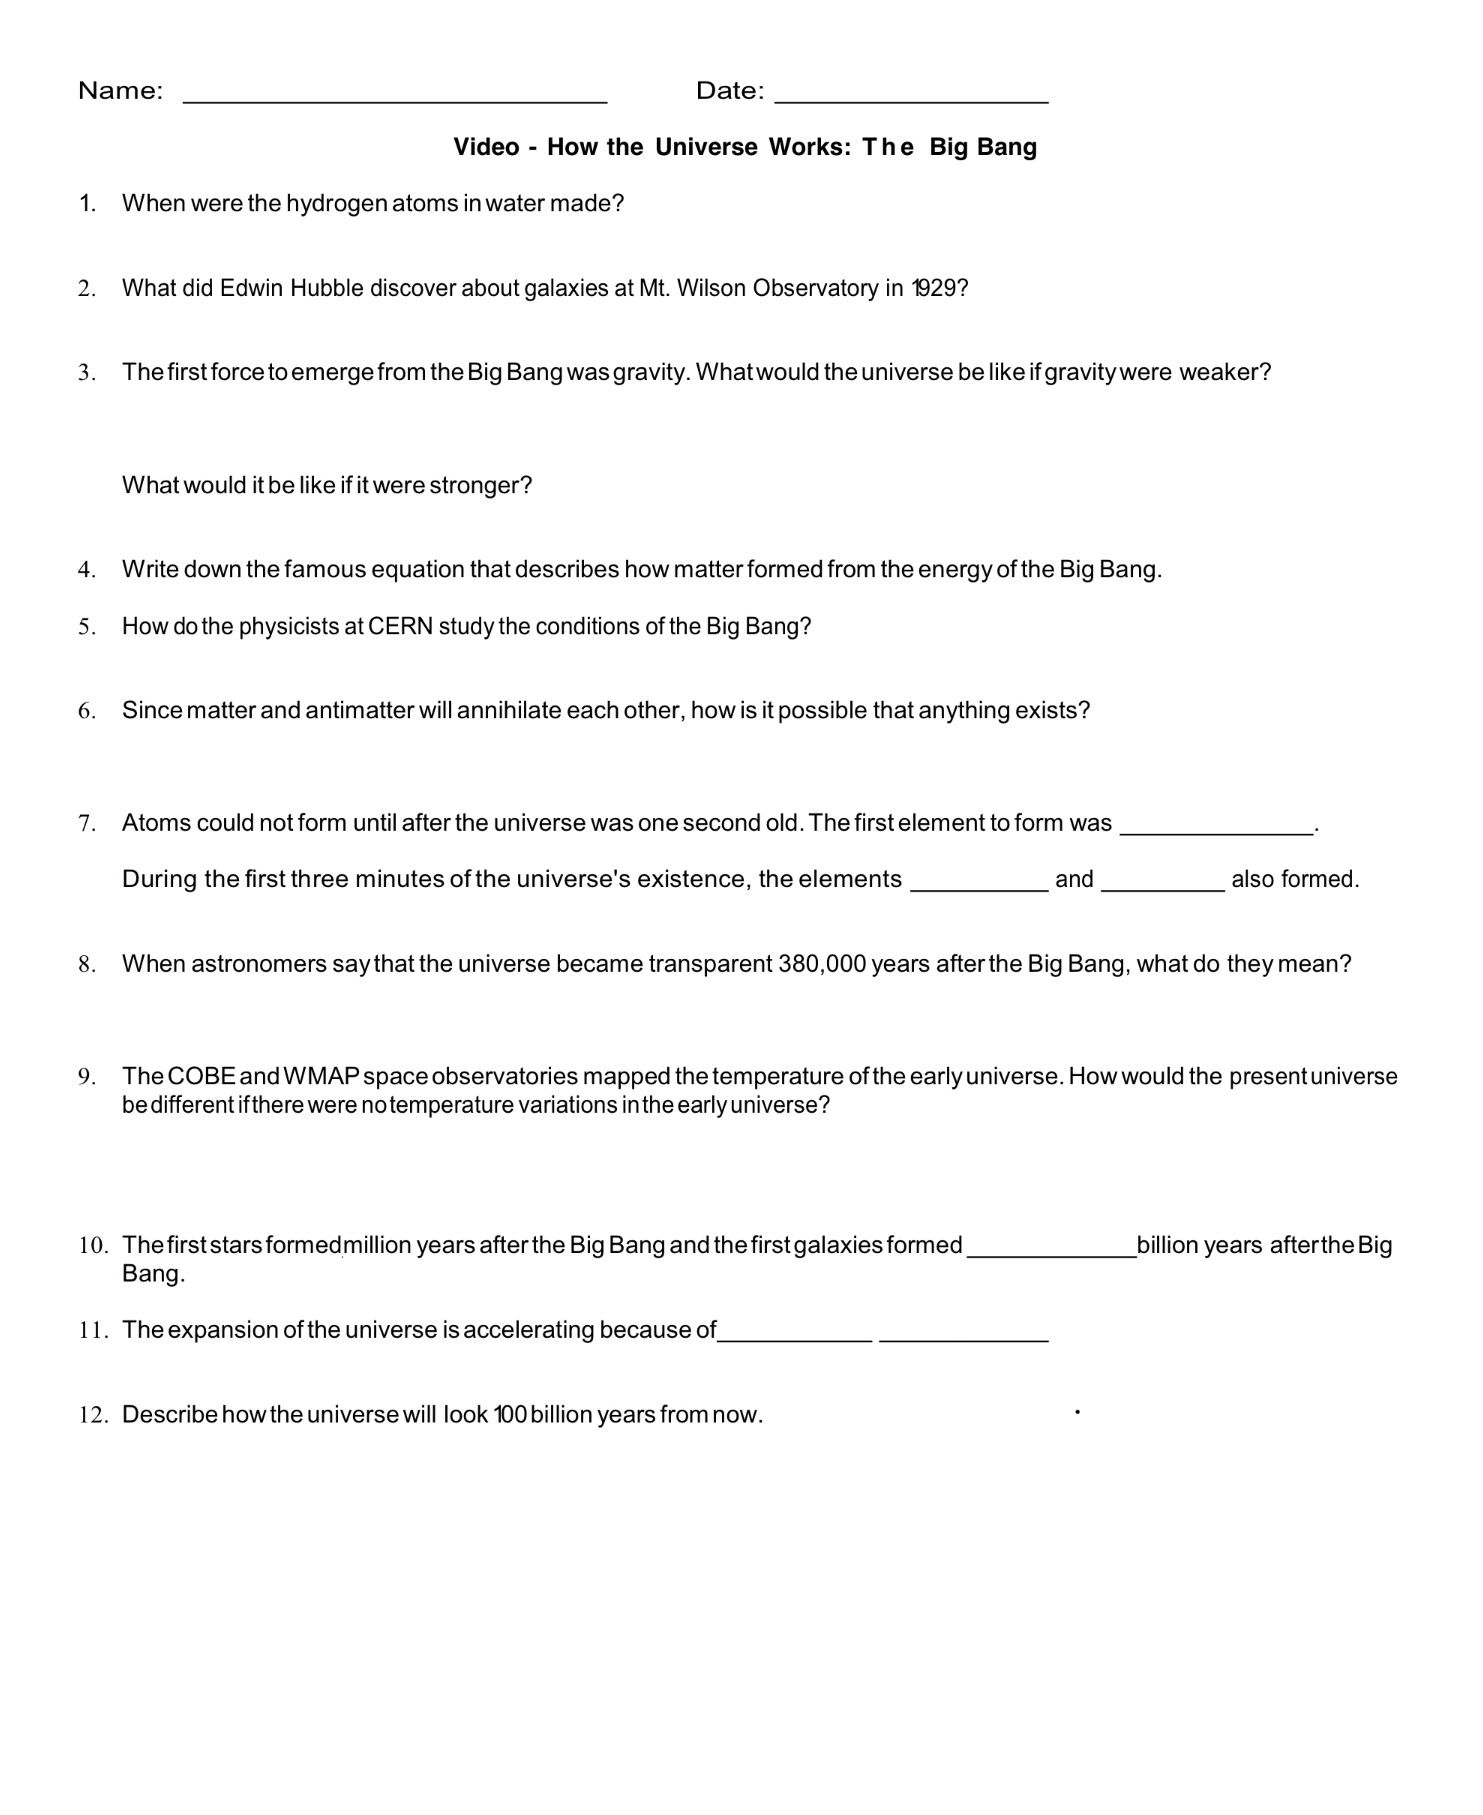 medium resolution of Big Bang Foldable Worksheets   Printable Worksheets and Activities for  Teachers